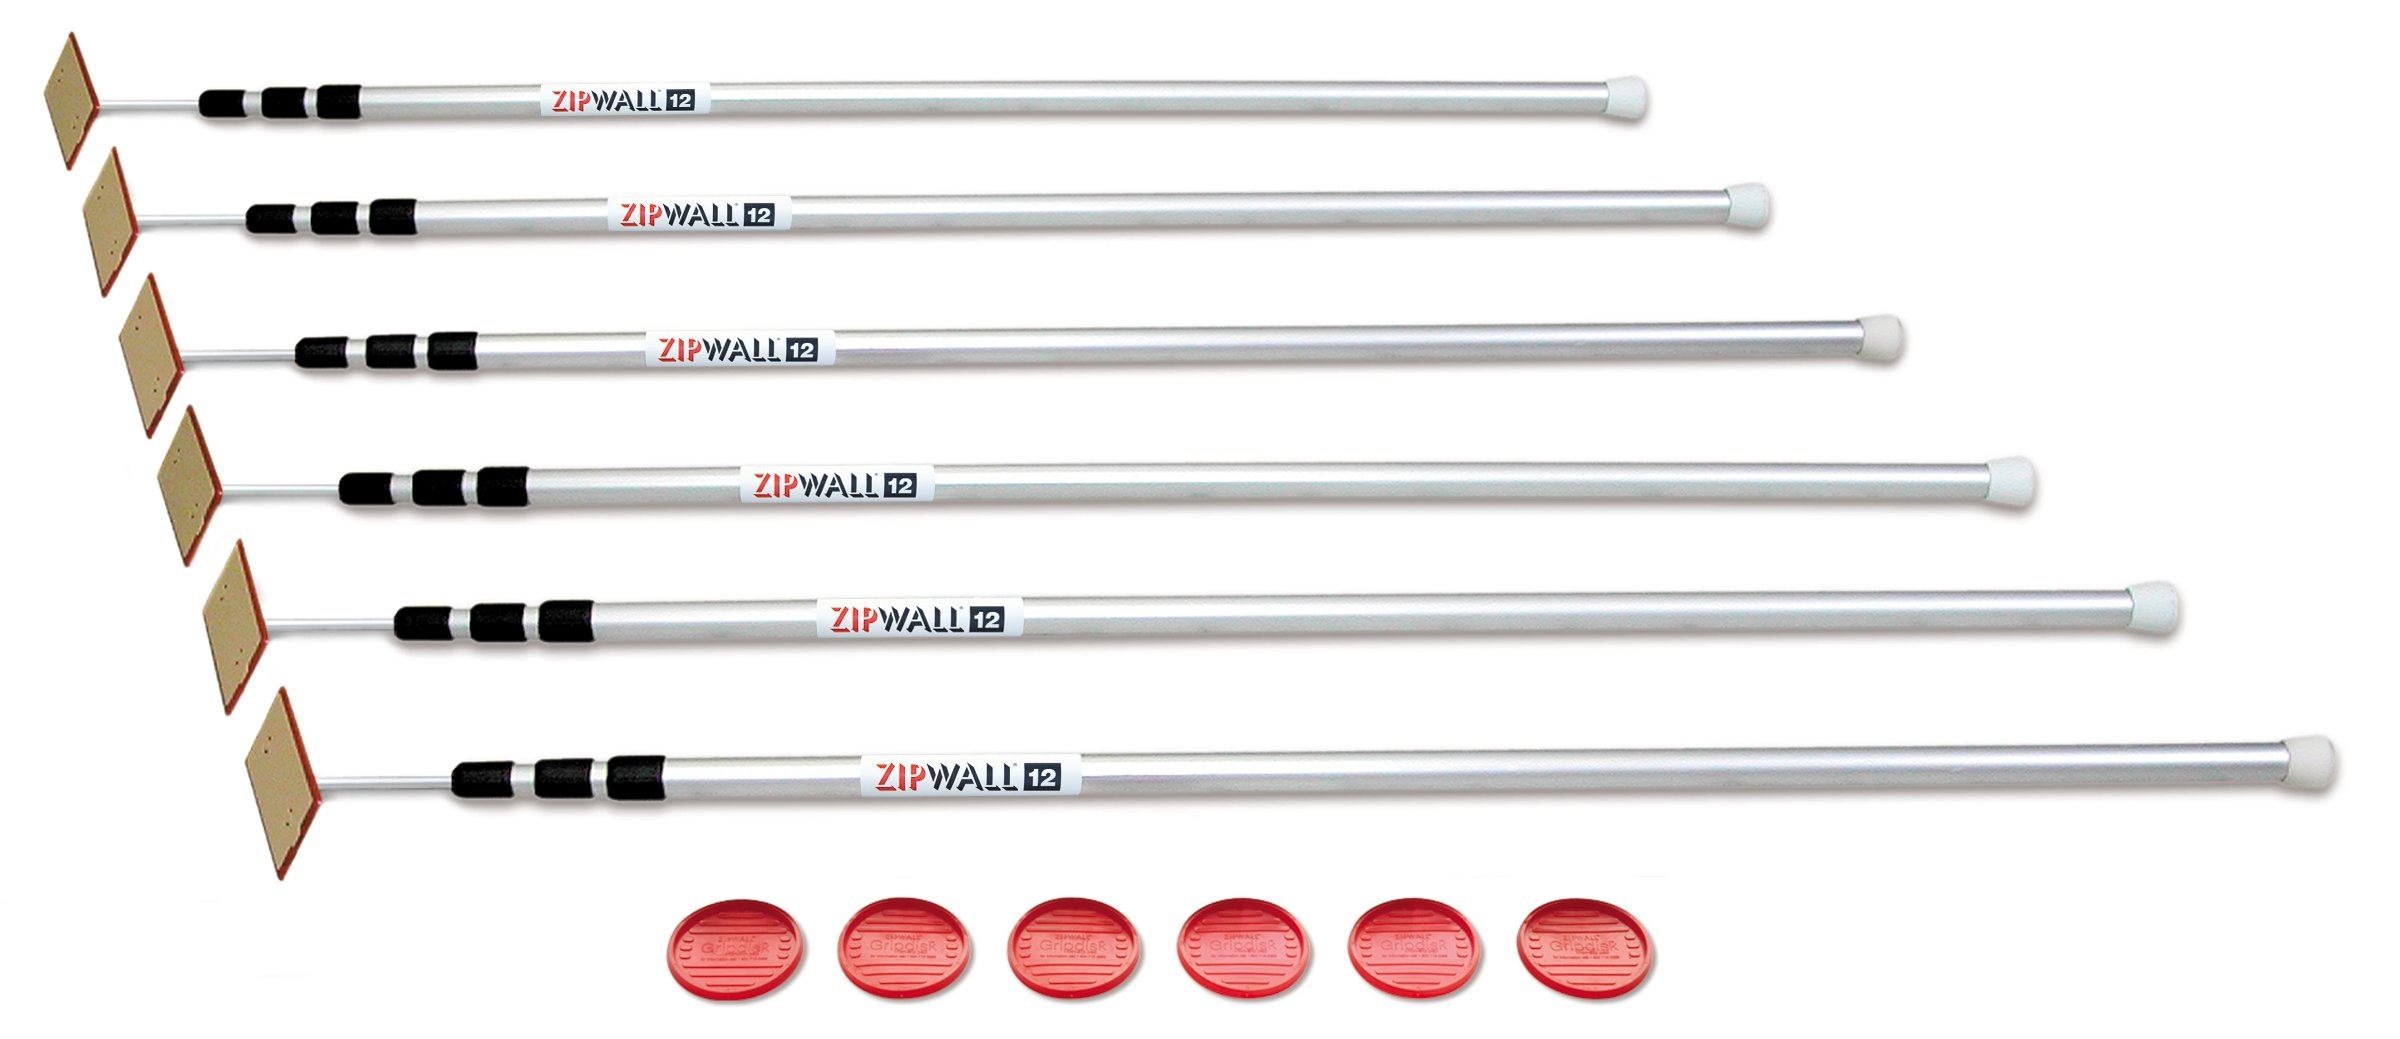 ZipWall SLP6 ZipPole 12-Foot Spring-Loaded Poles for Dust Barriers, 6-Pack by ZipWall (Image #1)